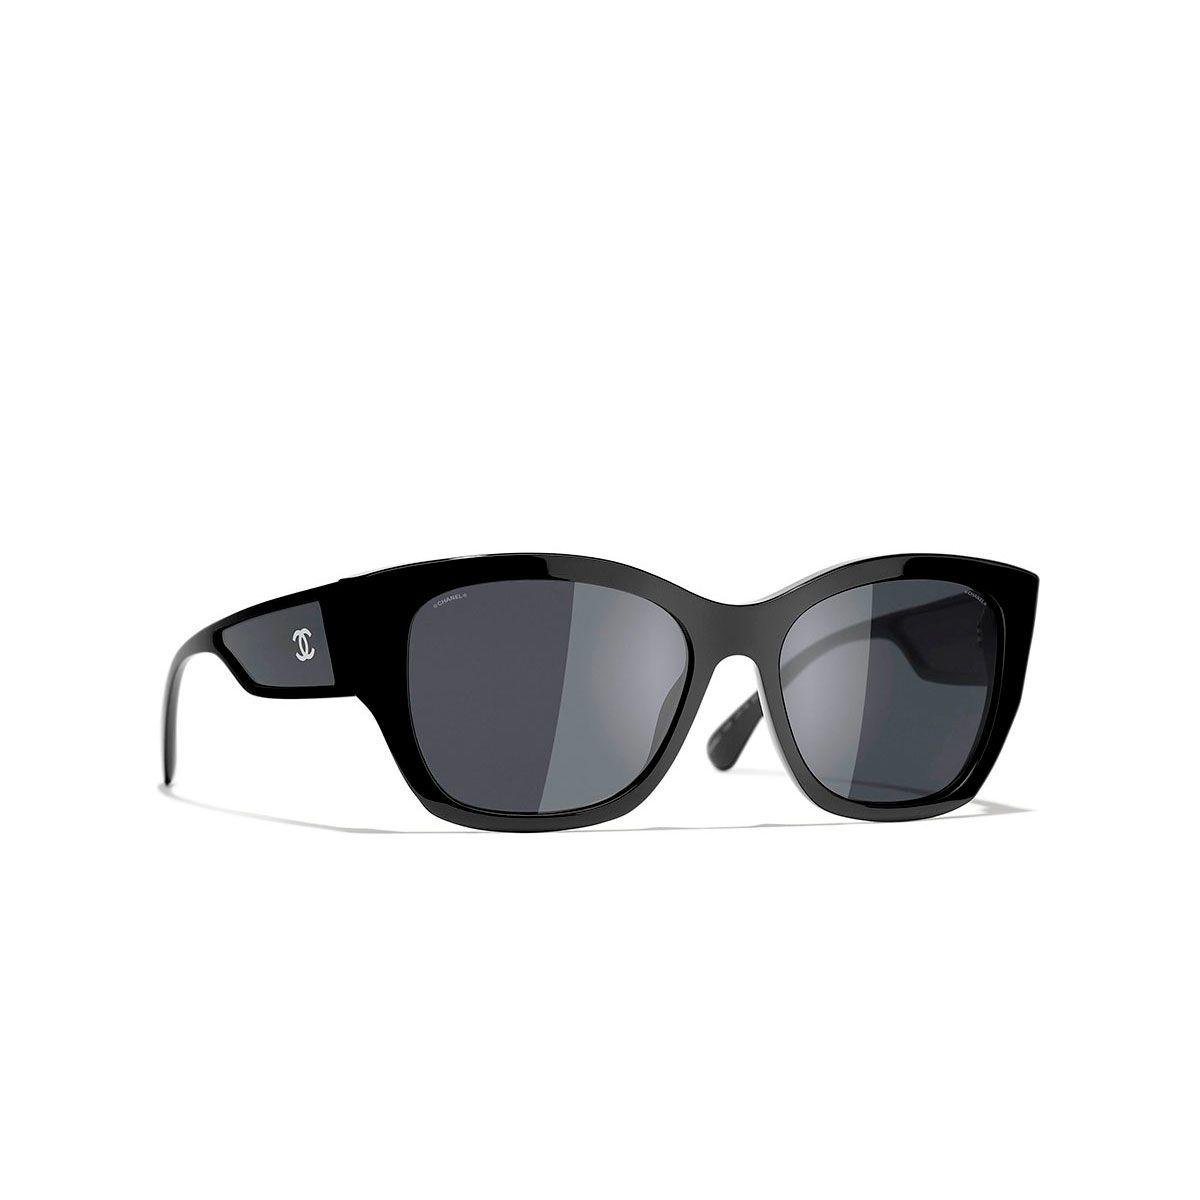 Butterfly Sunglasses 255 Sunglasses